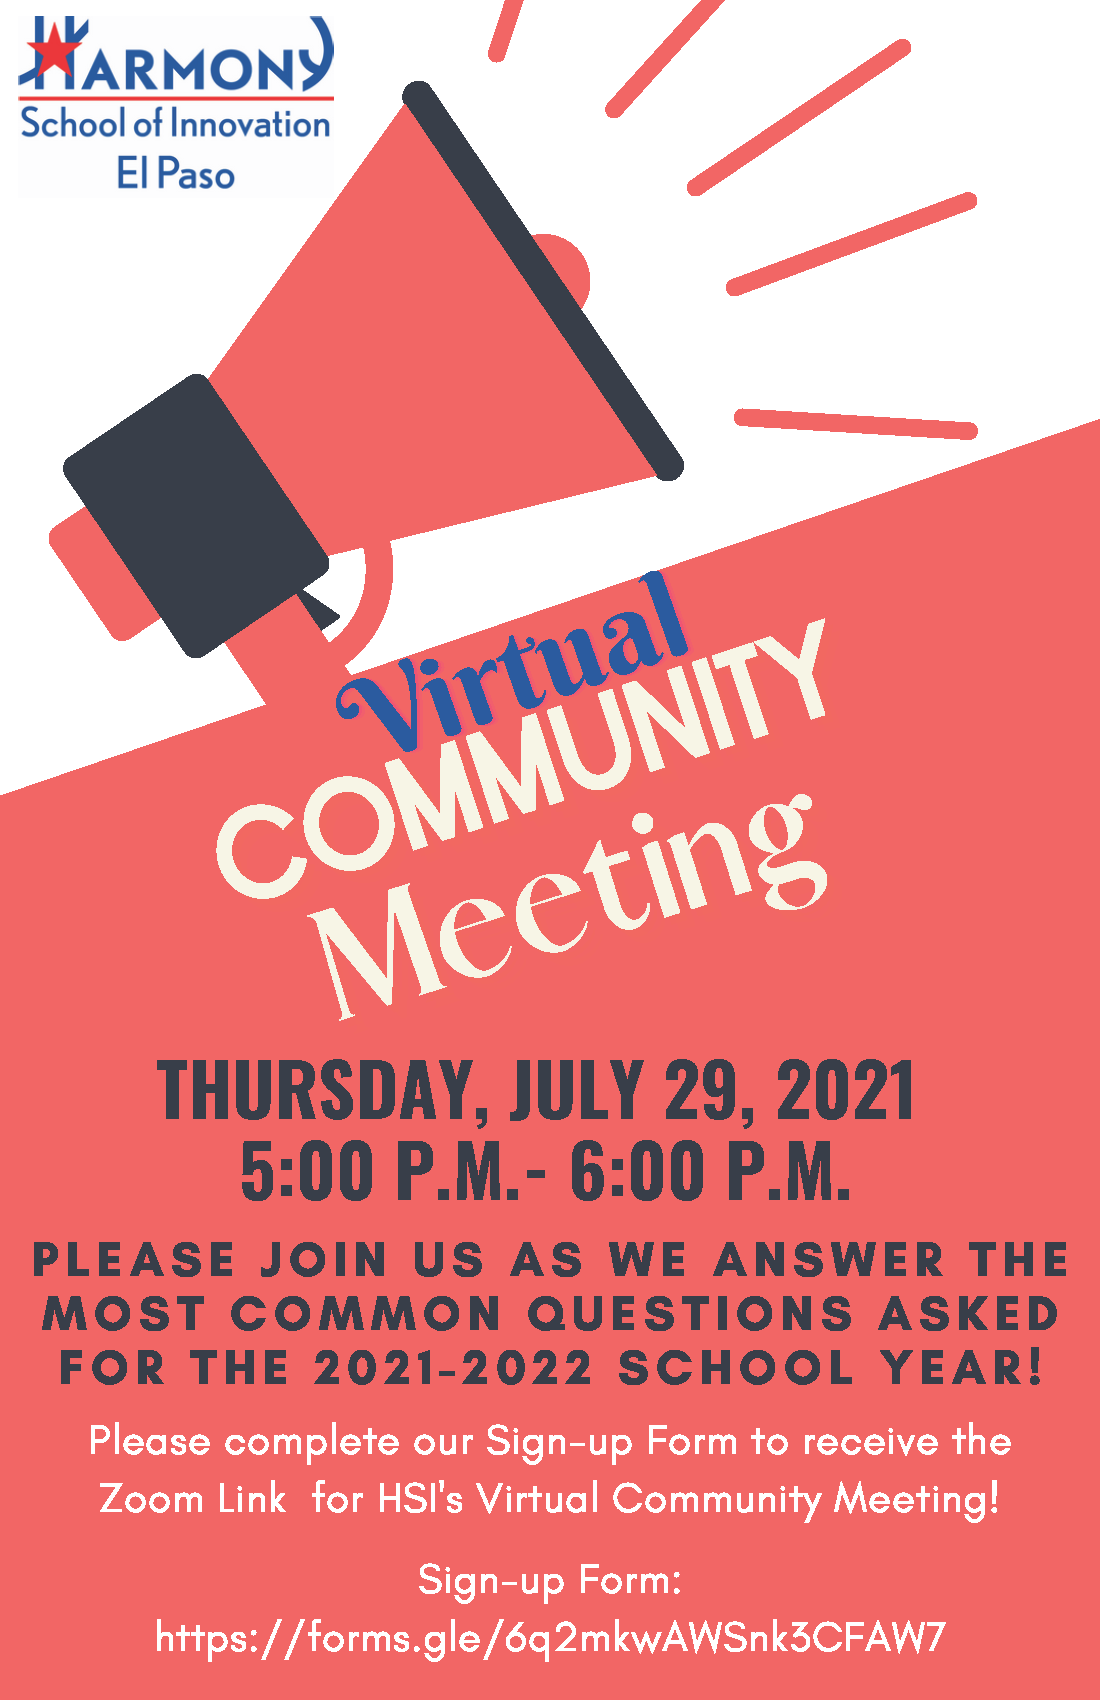 An image of the Virtual Community Meeting flyer